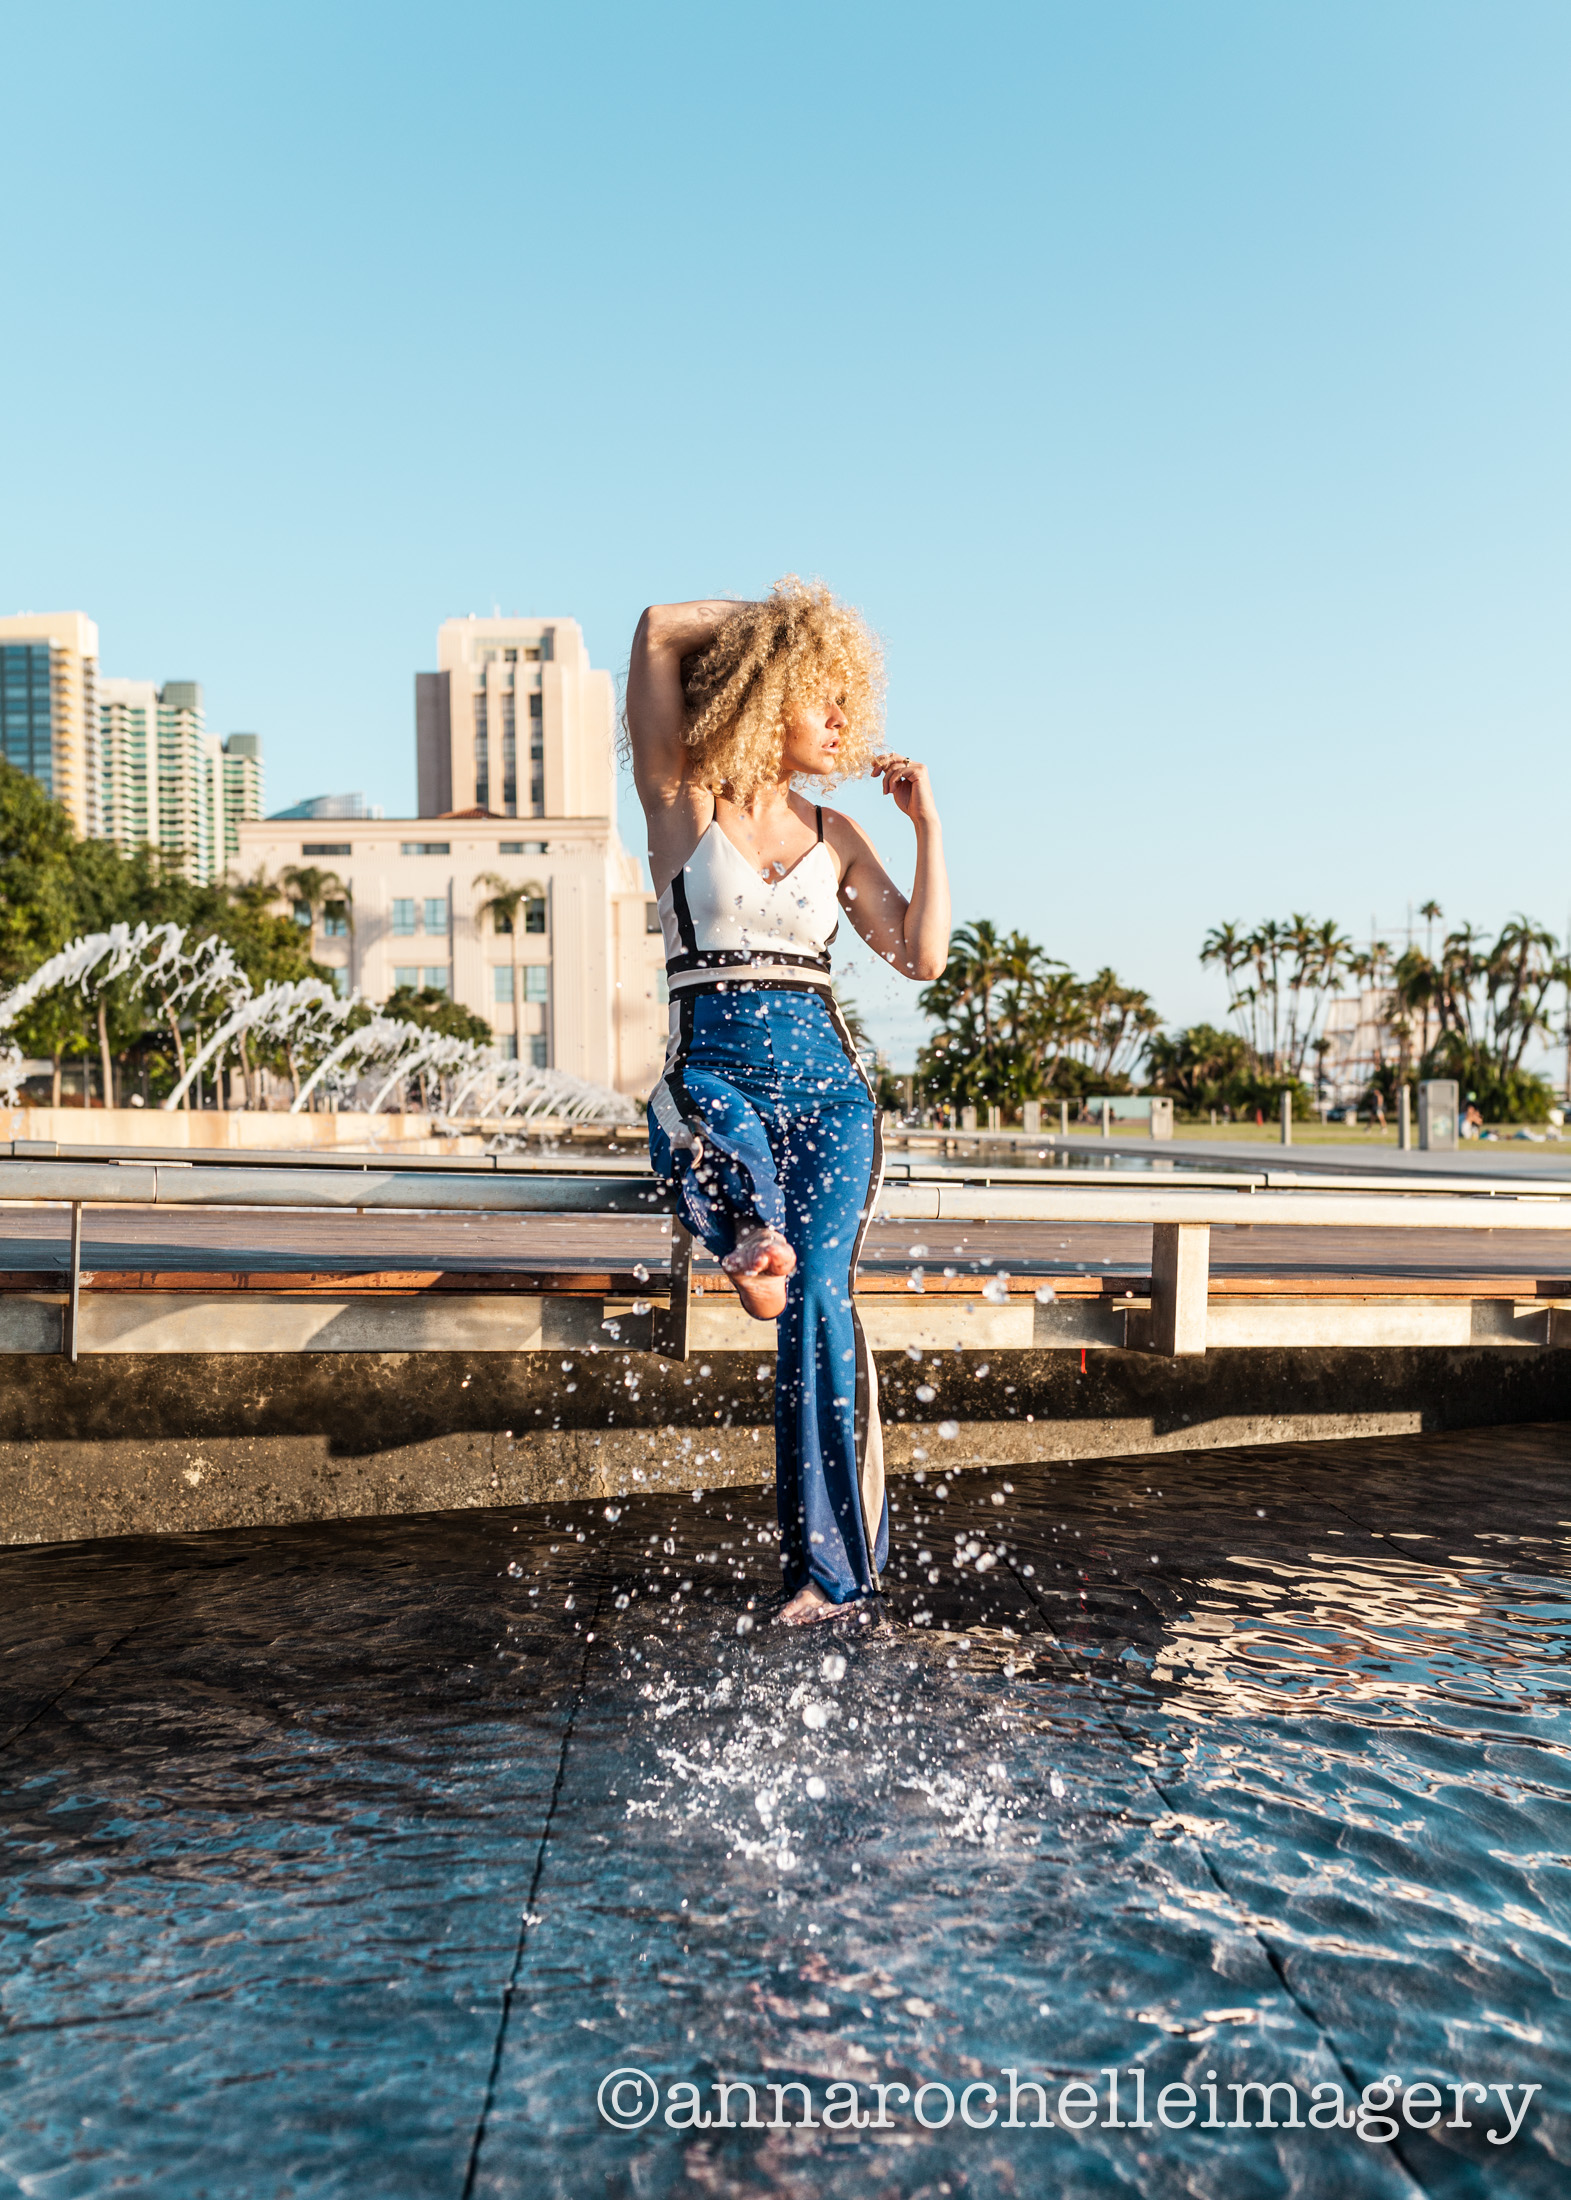 san-diego-waterfront-model-photographer-anna-rochelle-imagery.jpg